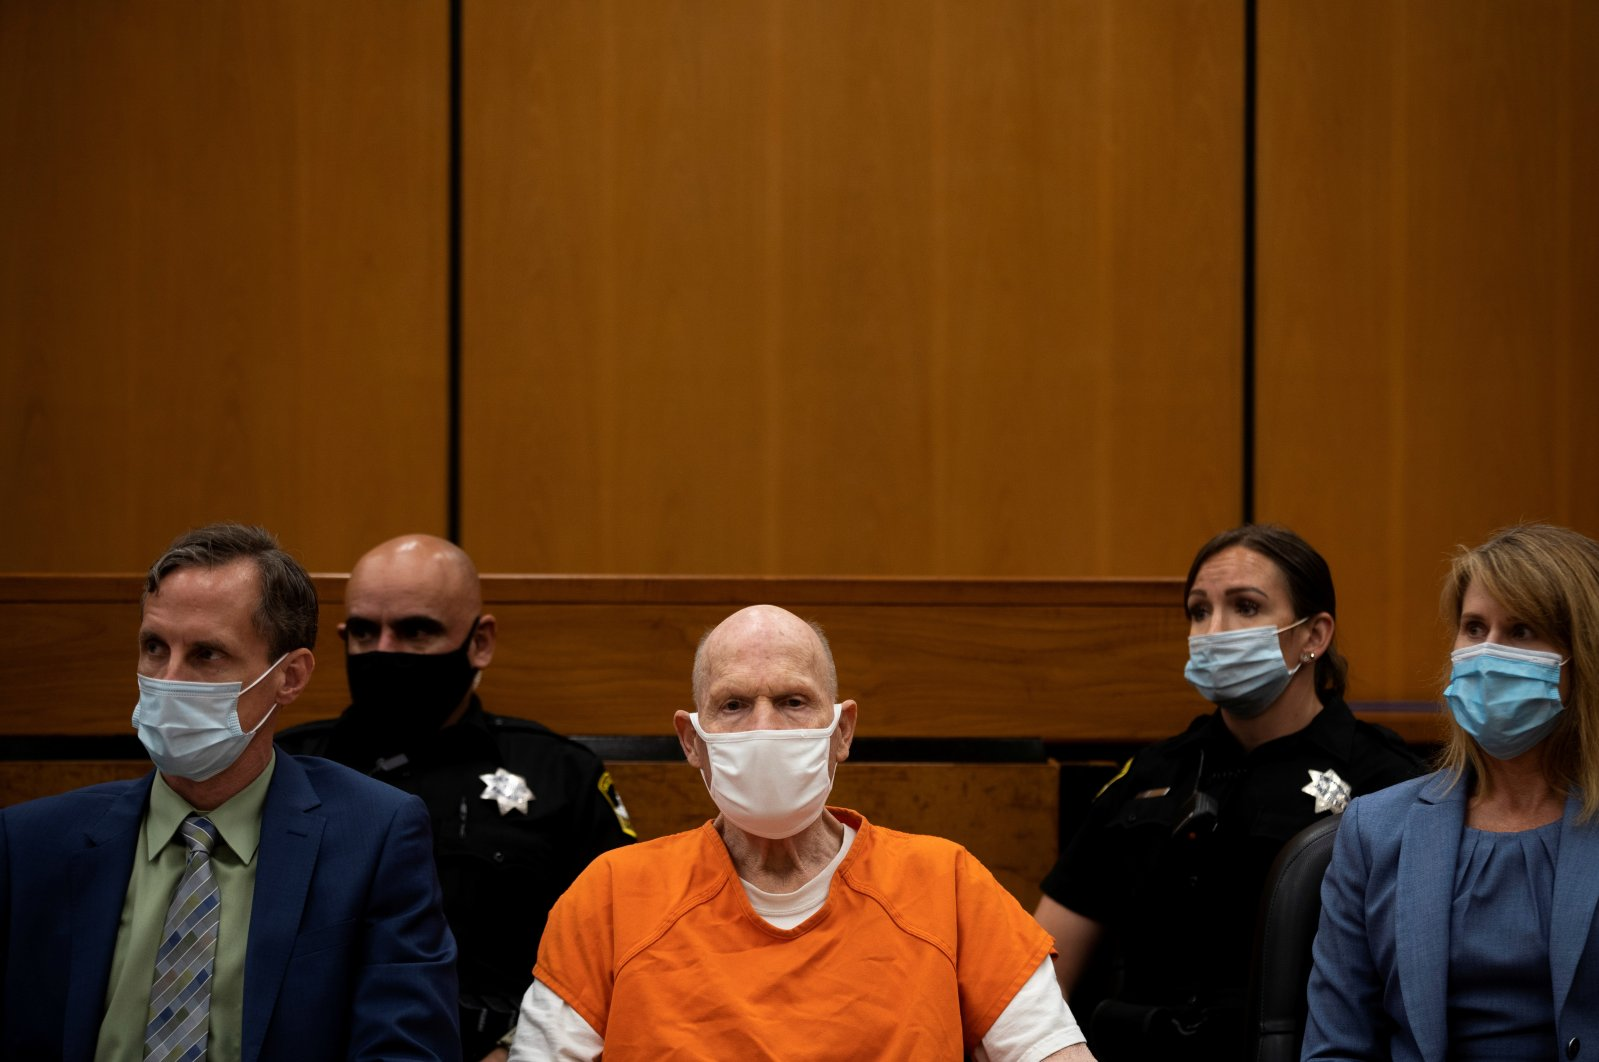 Joseph James DeAngelo, known as the Golden State Killer, looks away from the podium as people who DeAngelo victimized make their statements on the first day of victim impact statements at the Gordon D. Schaber Sacramento County Courthouse in Sacramento, California, U.S., Aug. 18, 2020. (Reuters Photo)